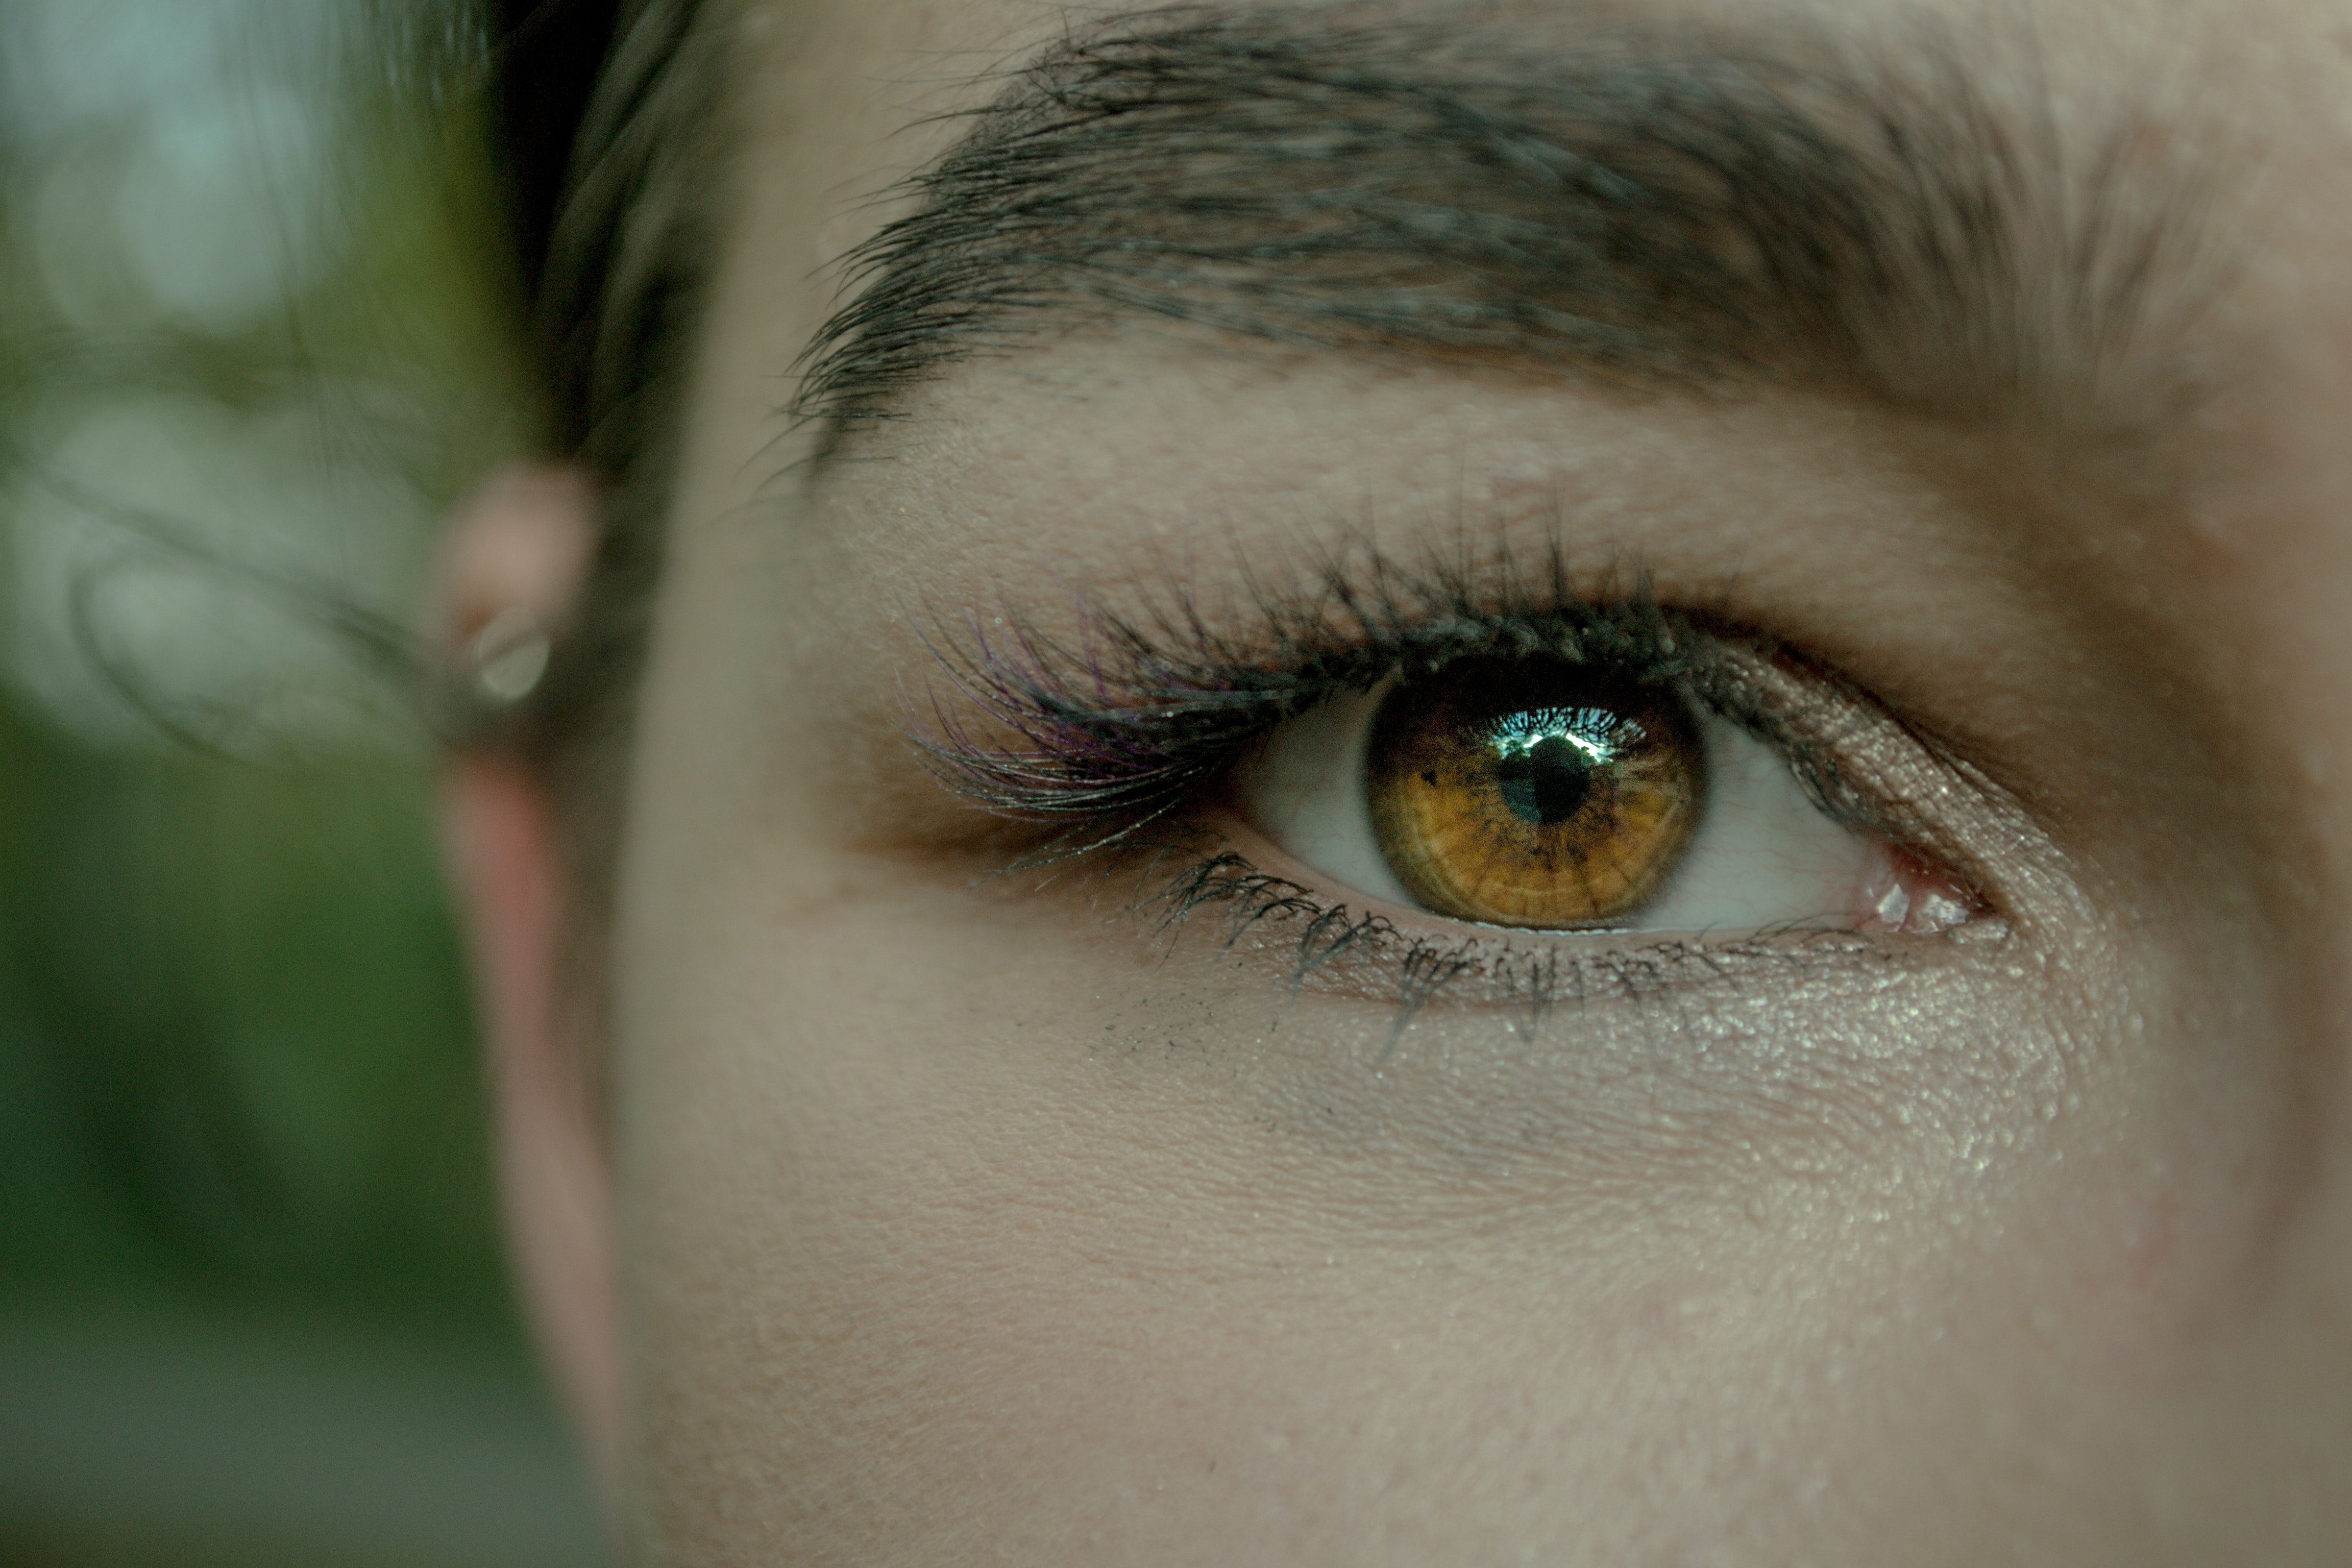 close-up photography of the eye of the woman